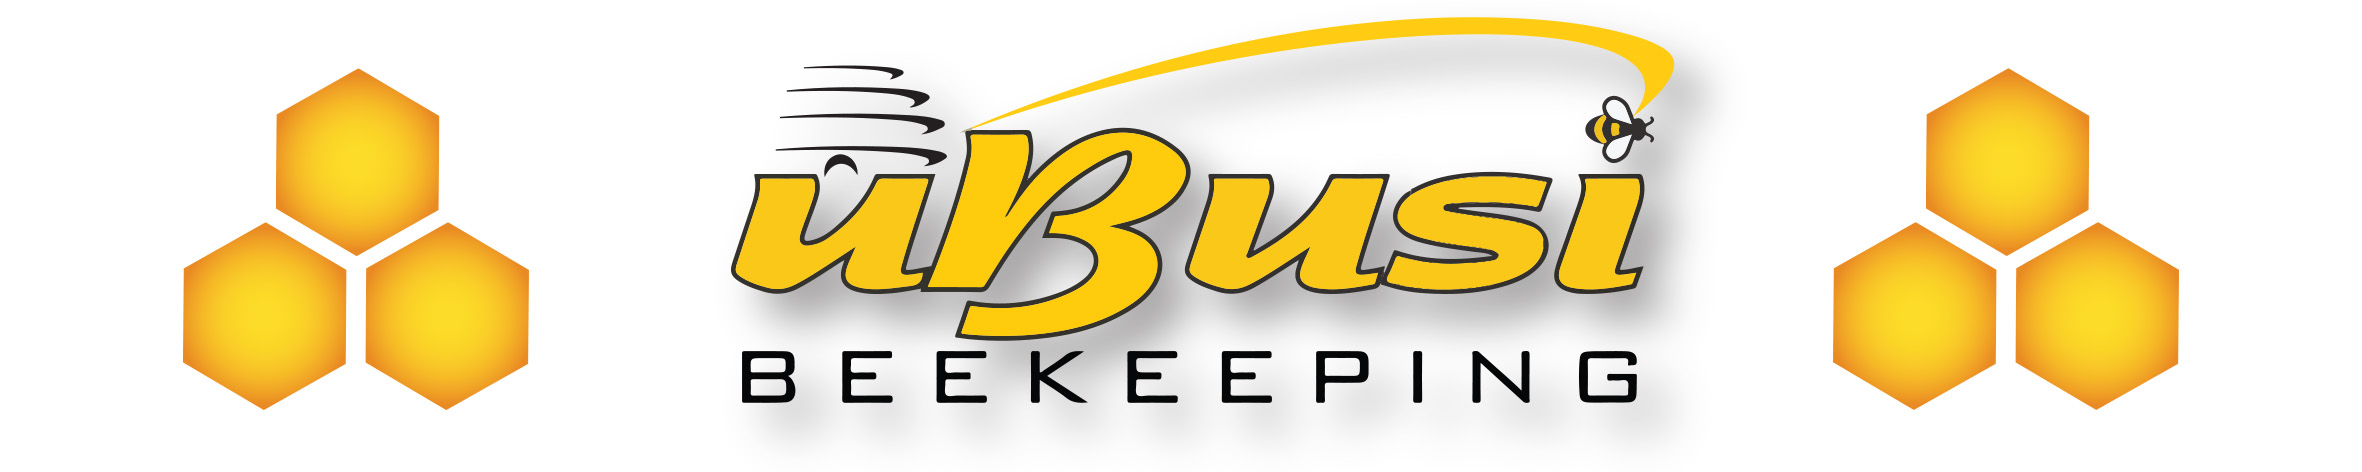 Ubusi Beekeeping Pty. Ltd